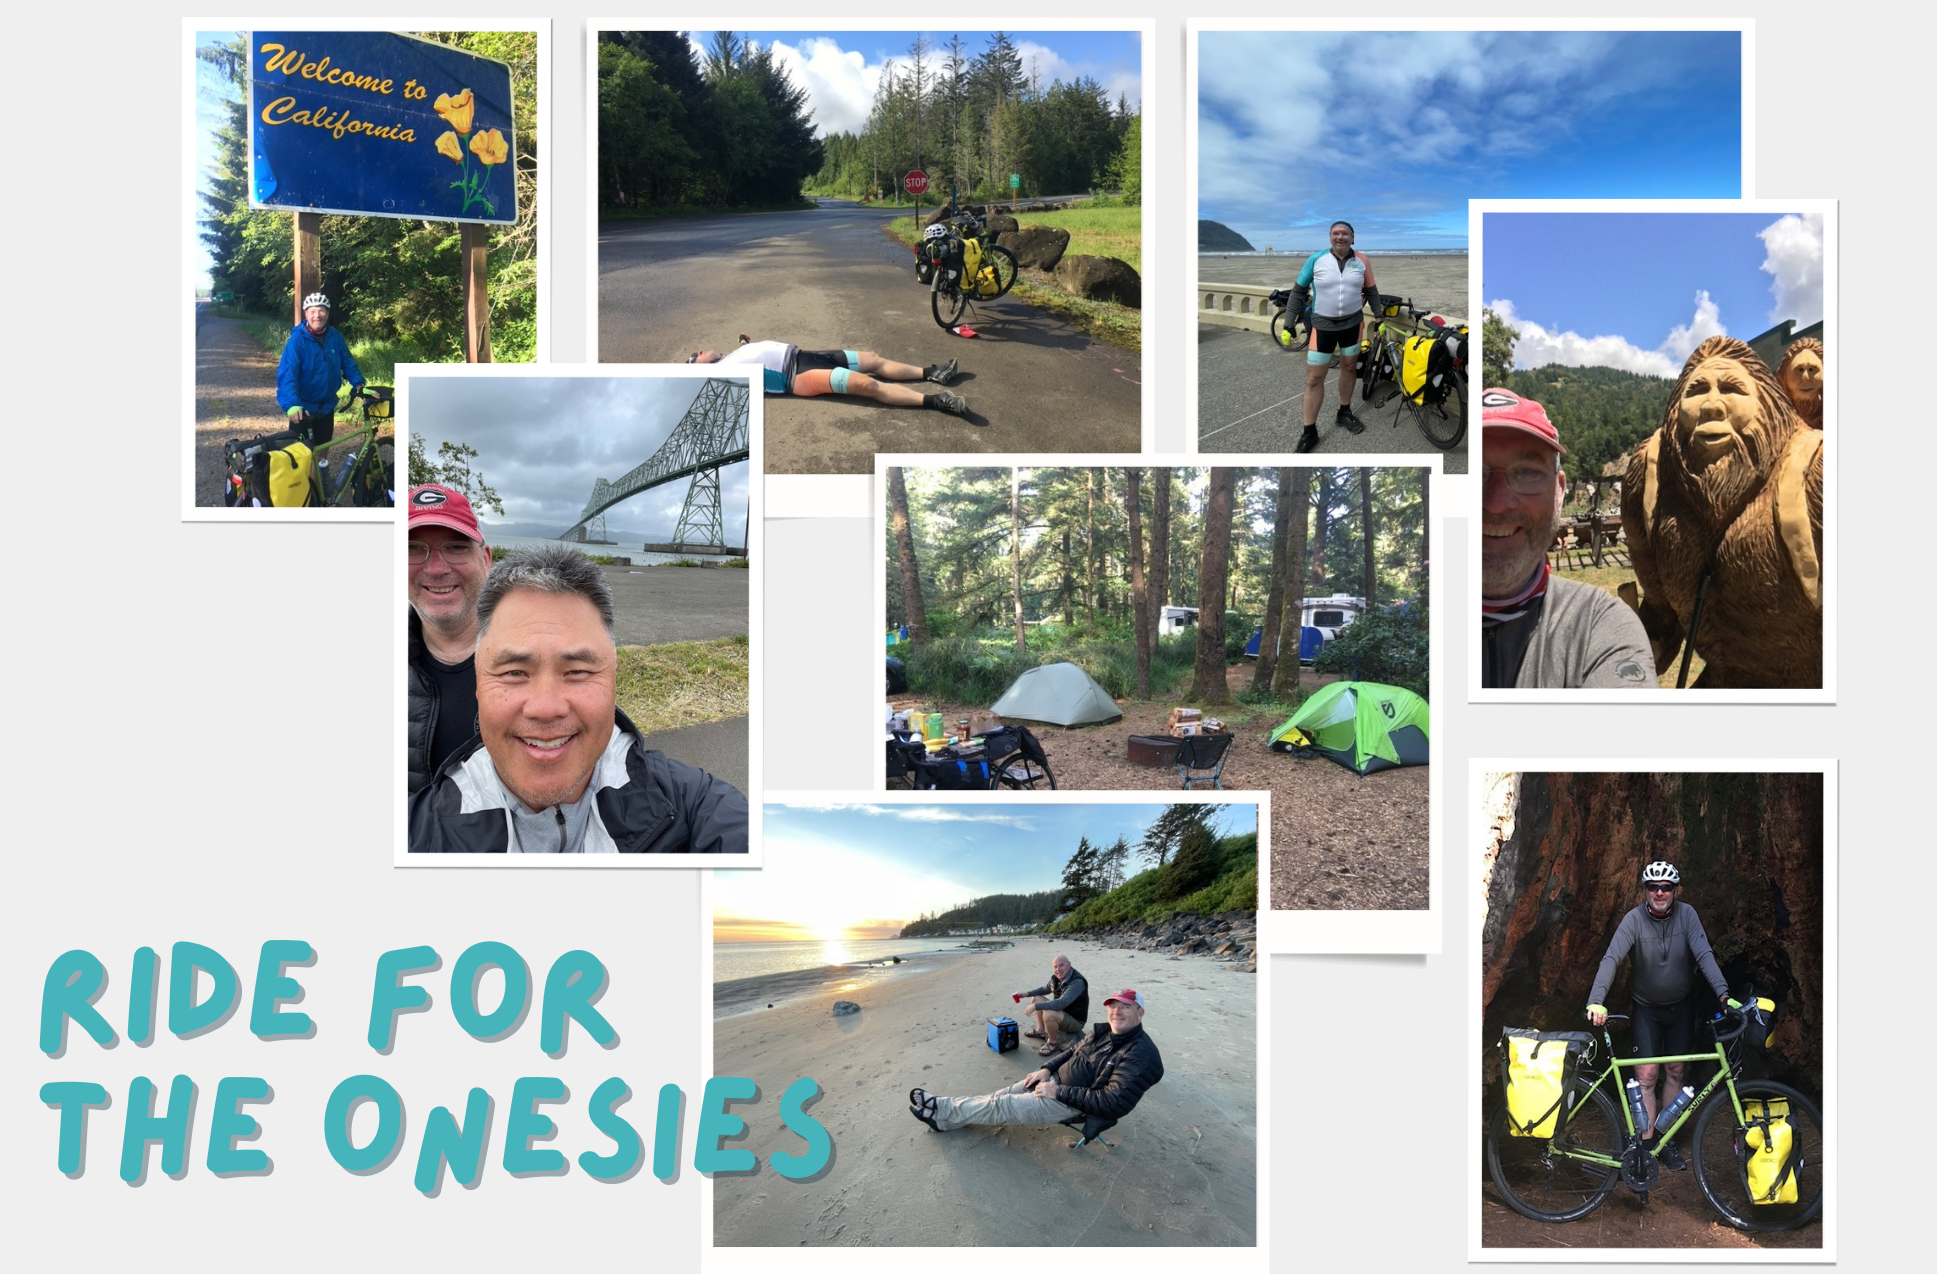 This fundholder cycled over 1,000 miles for a cause